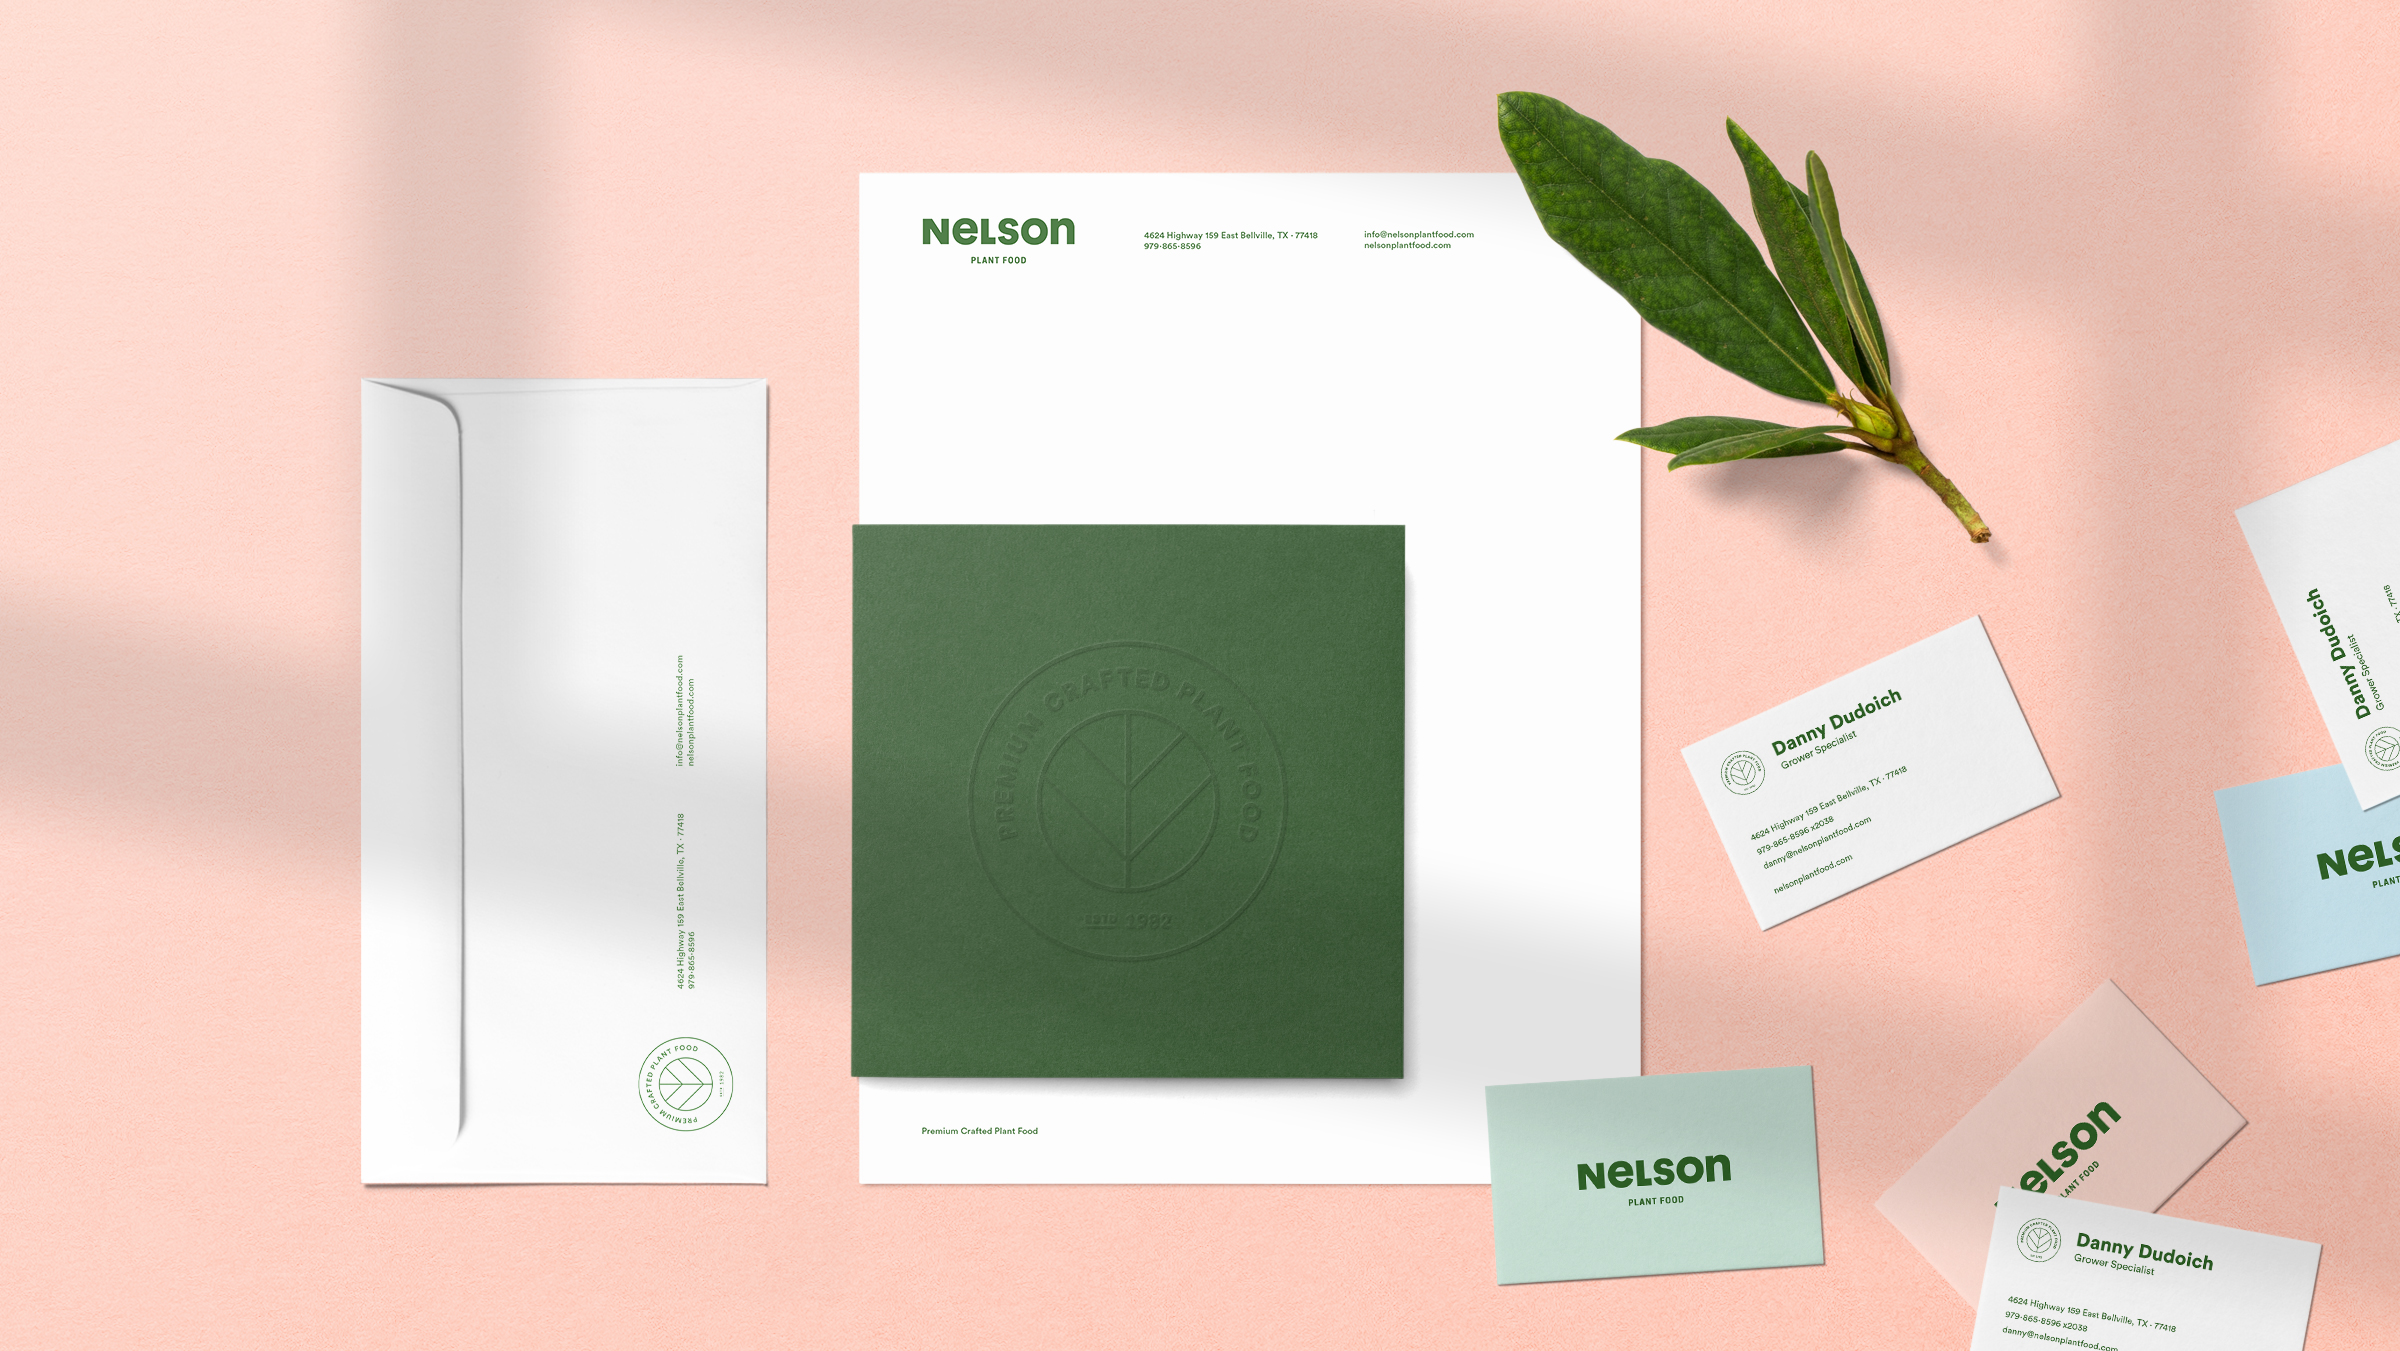 Nelson Plant Food brand stationery